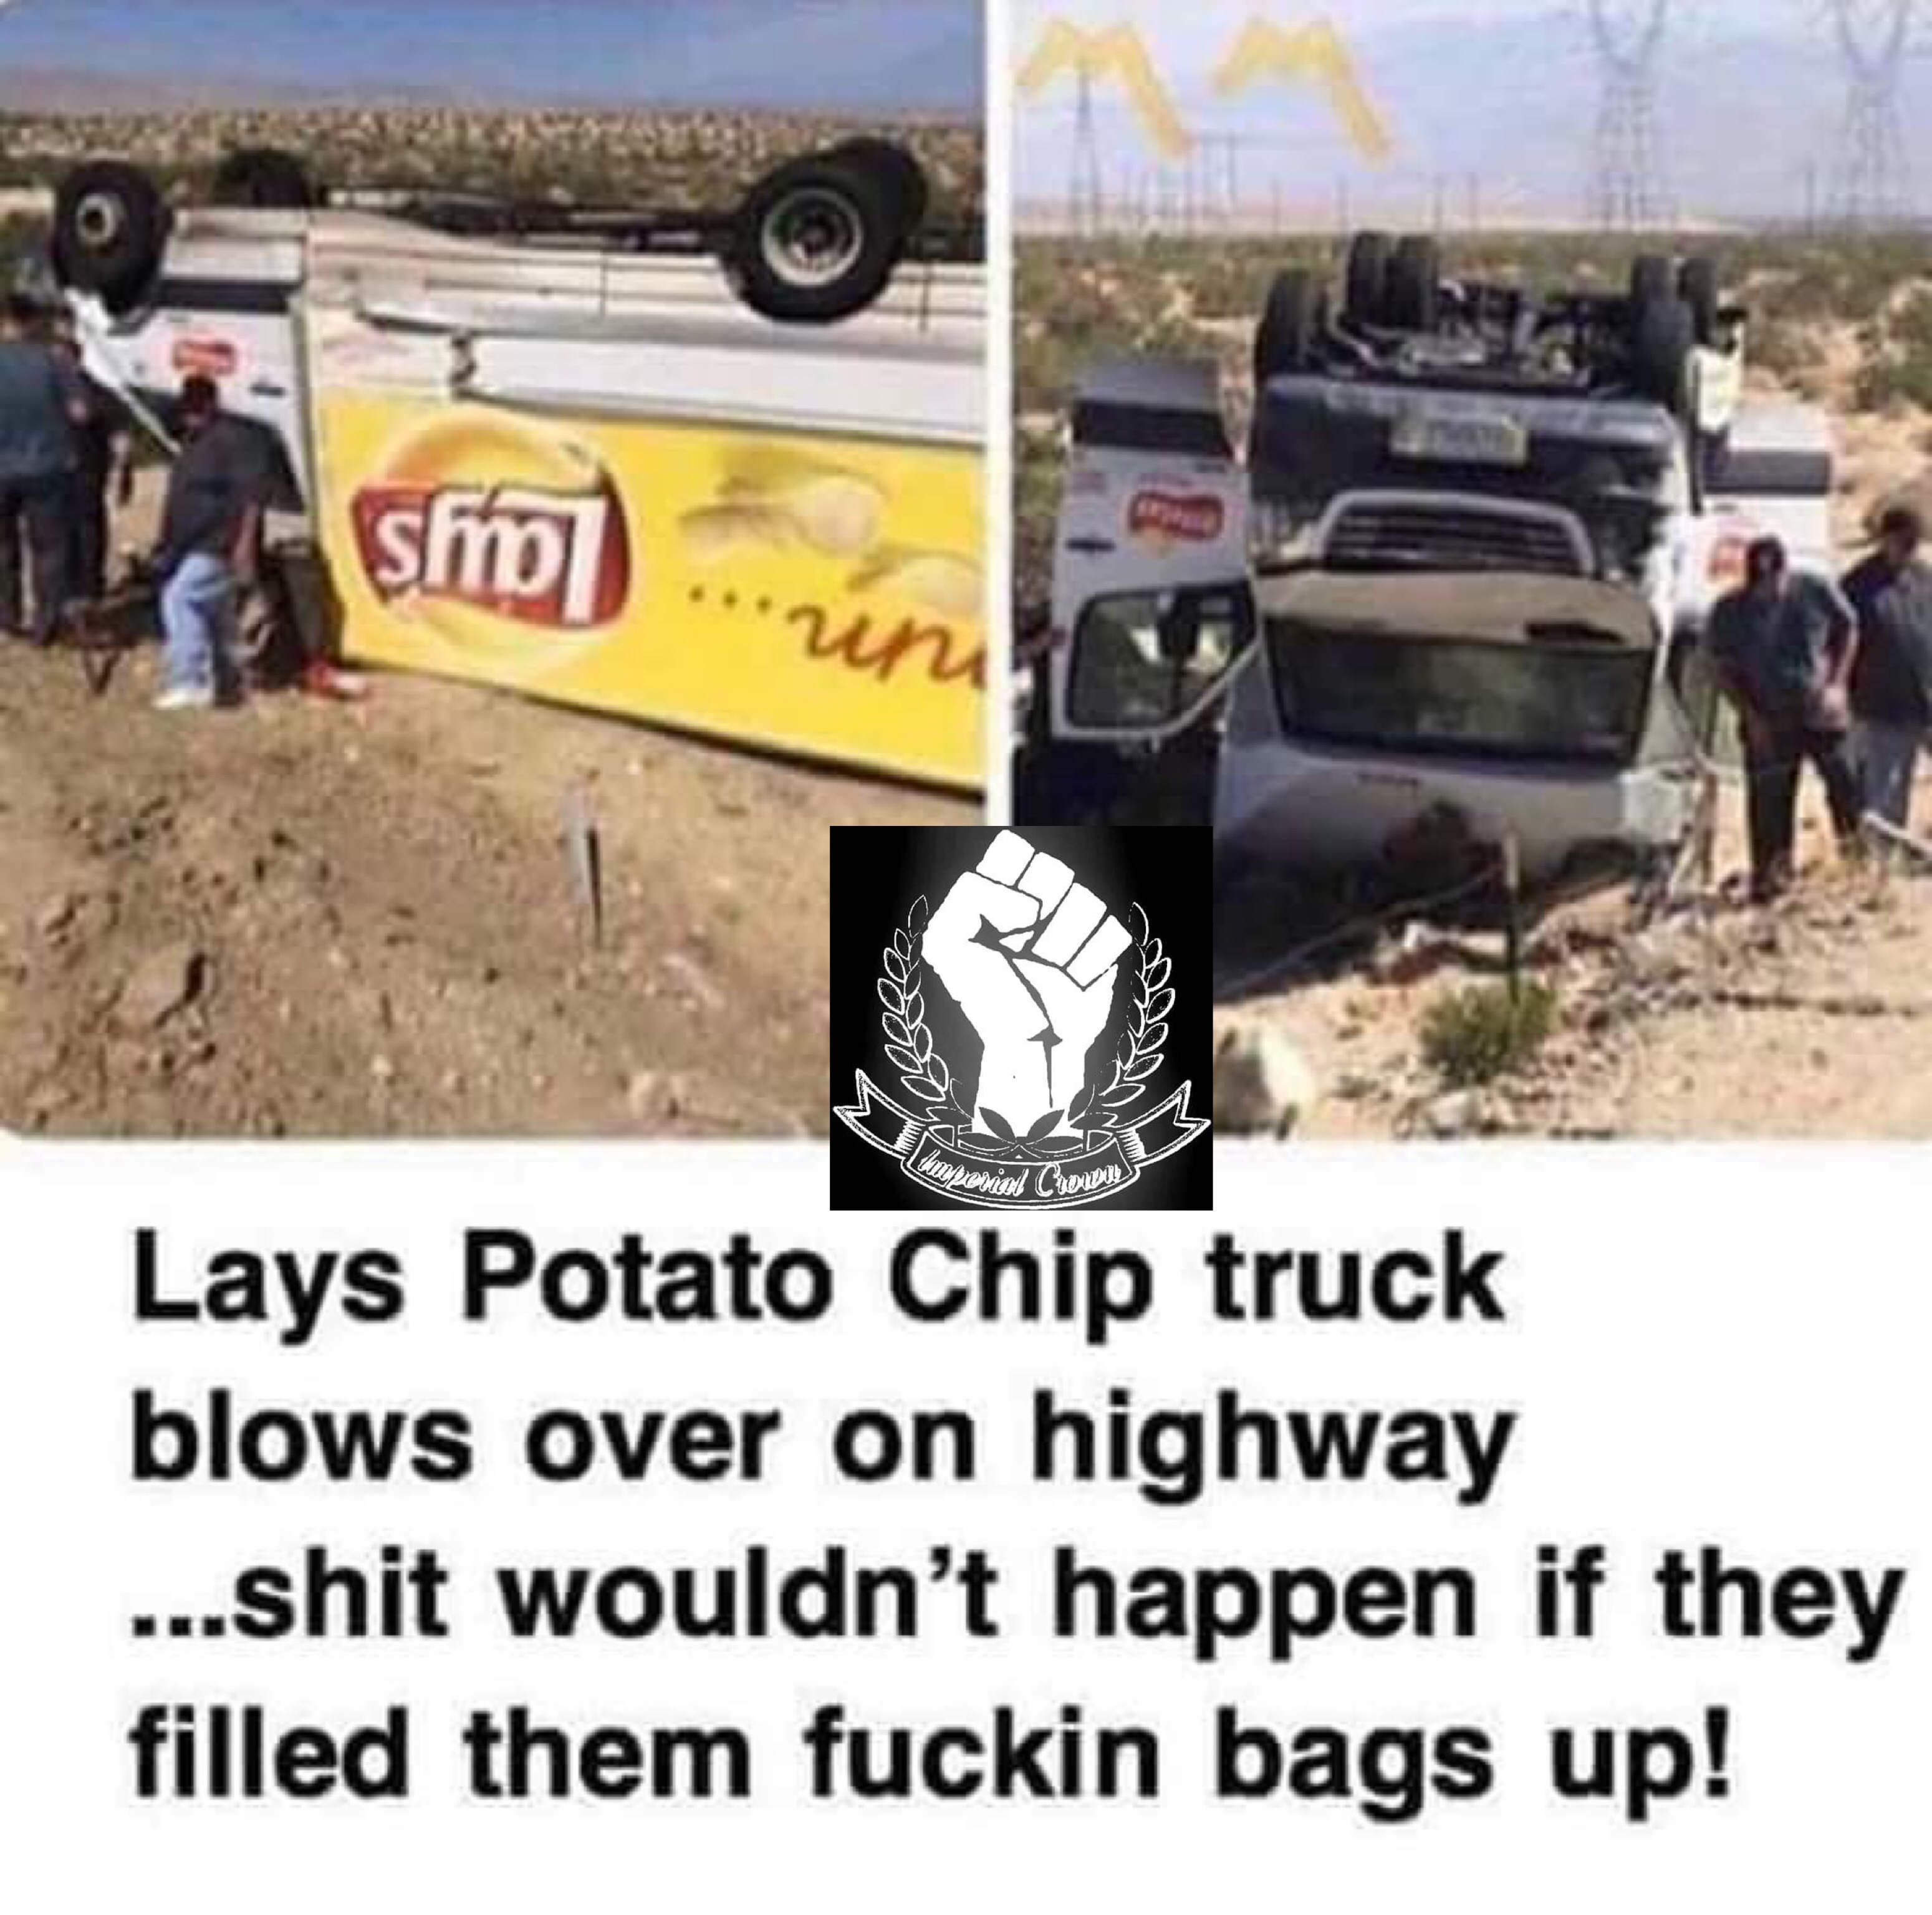 Lays potato chip truck blows over on highway shit wouldn't happen if they filled them fuckin bags up